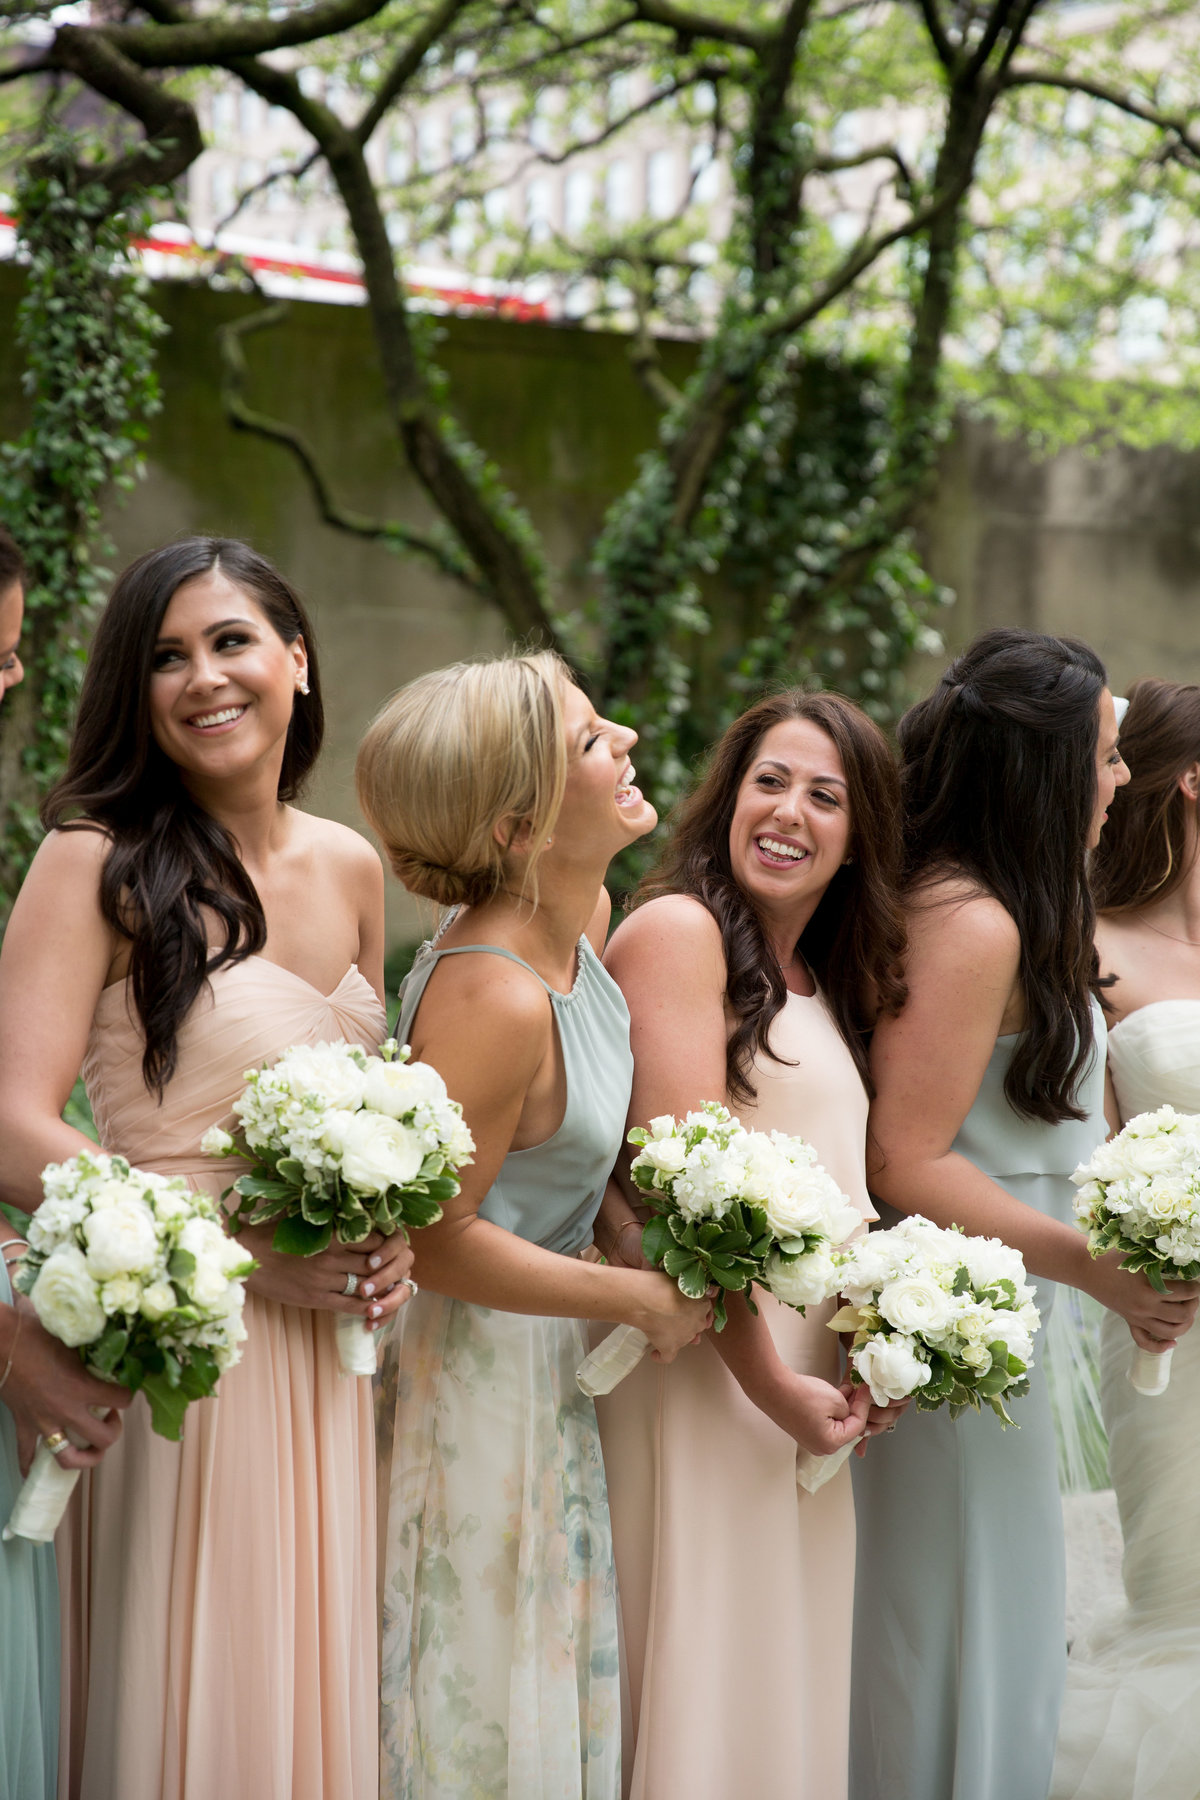 Nicole and Paul Wedding - Natalie Probst Photography 412